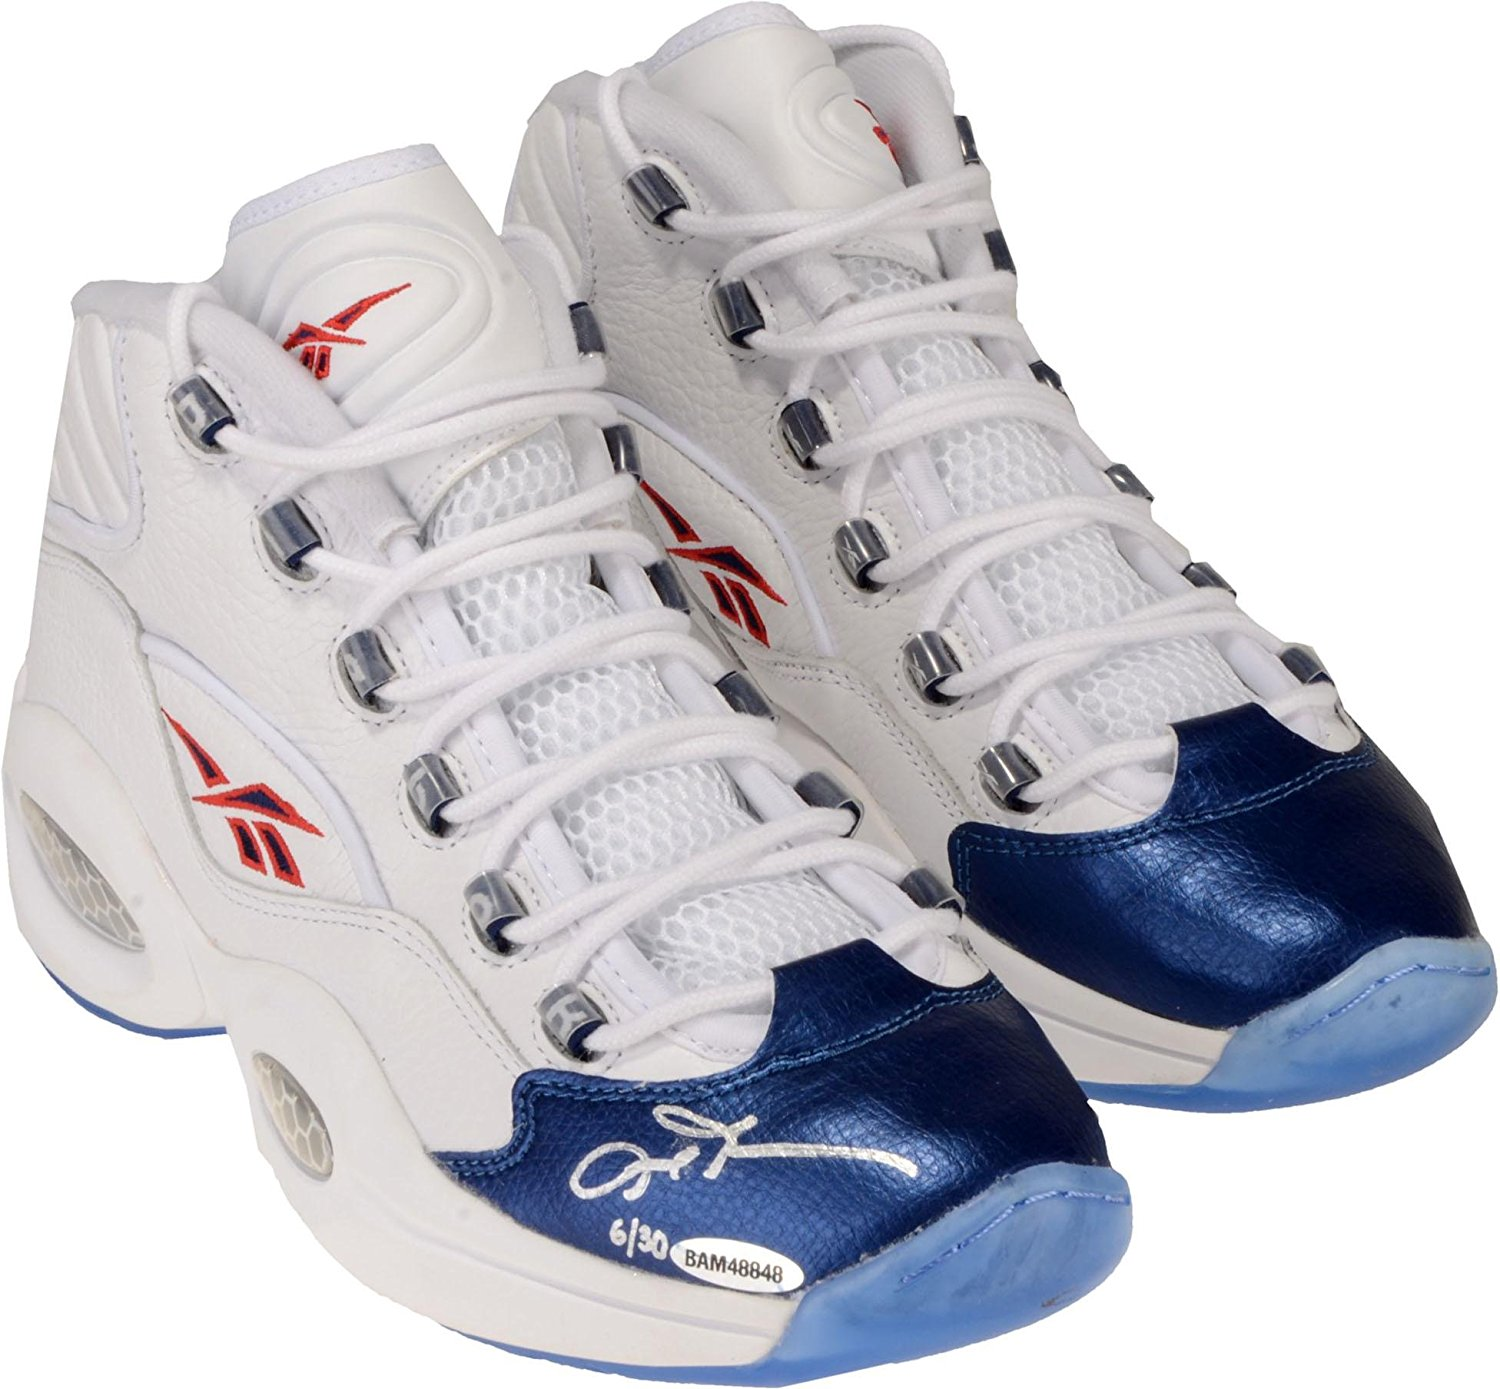 Get Quotations · Allen Iverson Philadelphia 76ers Autographed White   Blue Reebok  Question Sneakers - Limited Edition of 30 806304a86